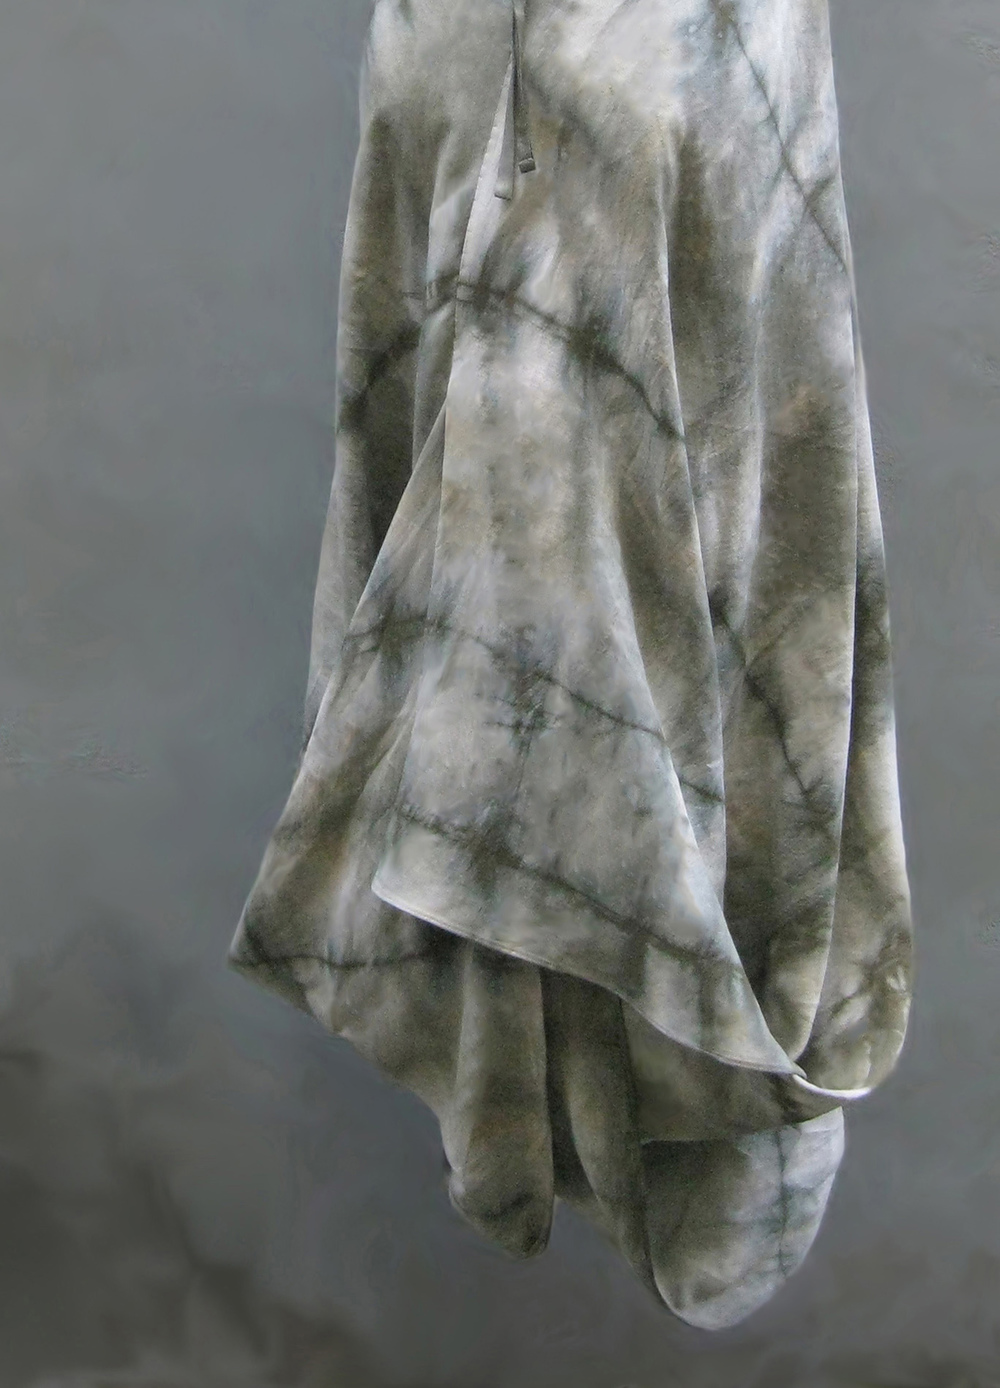 linen shibori dress close-up.jpg